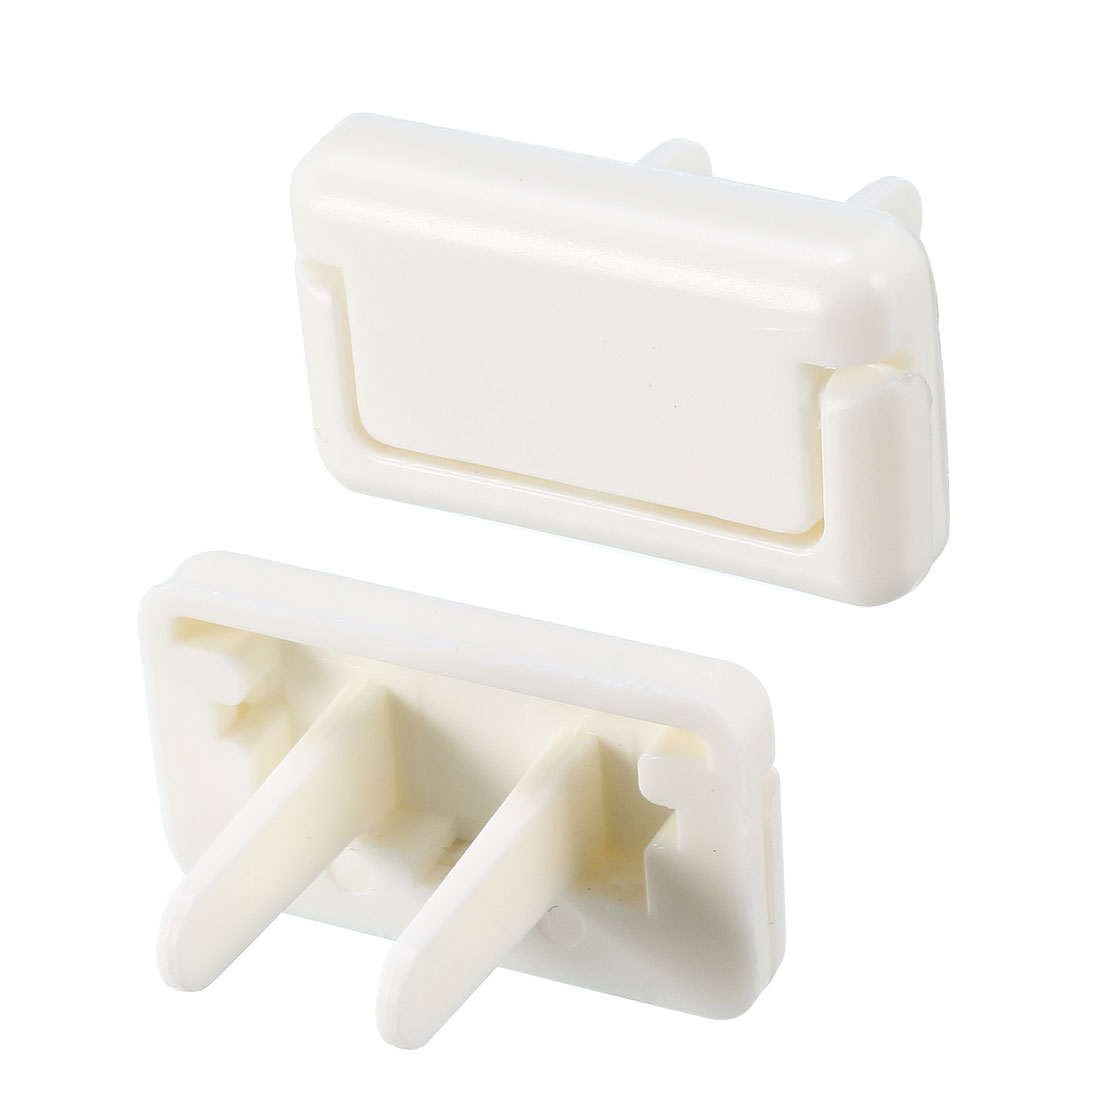 US Stand Power Socket Covers Durable Electrical Protector Safety Caps 40 Pcs